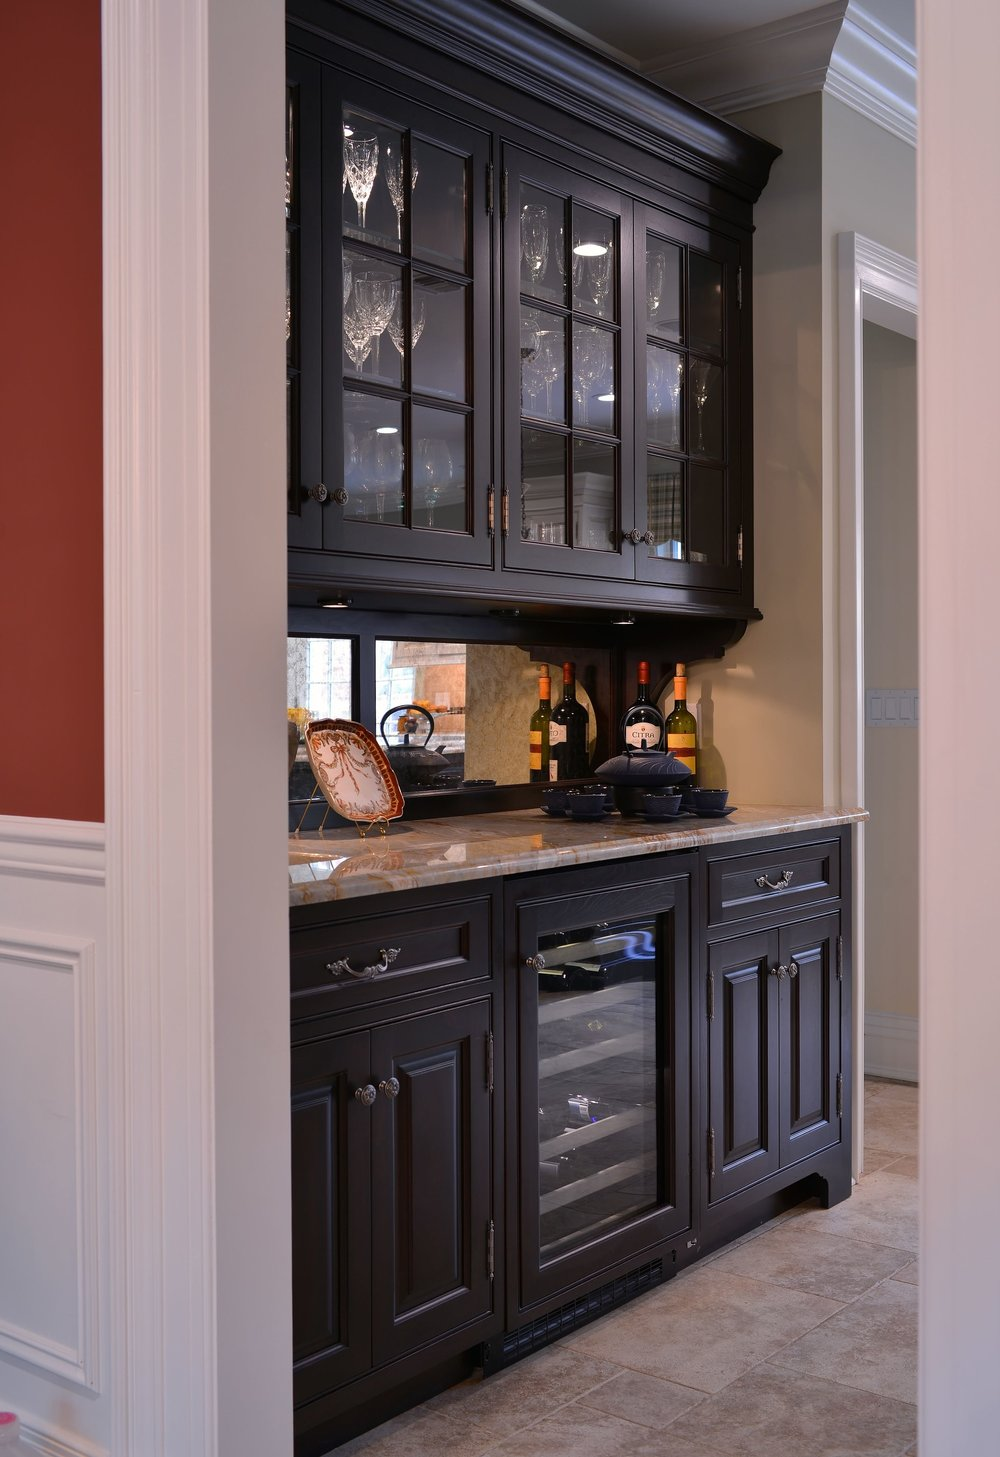 Traditional style kitchen with wine glass storage